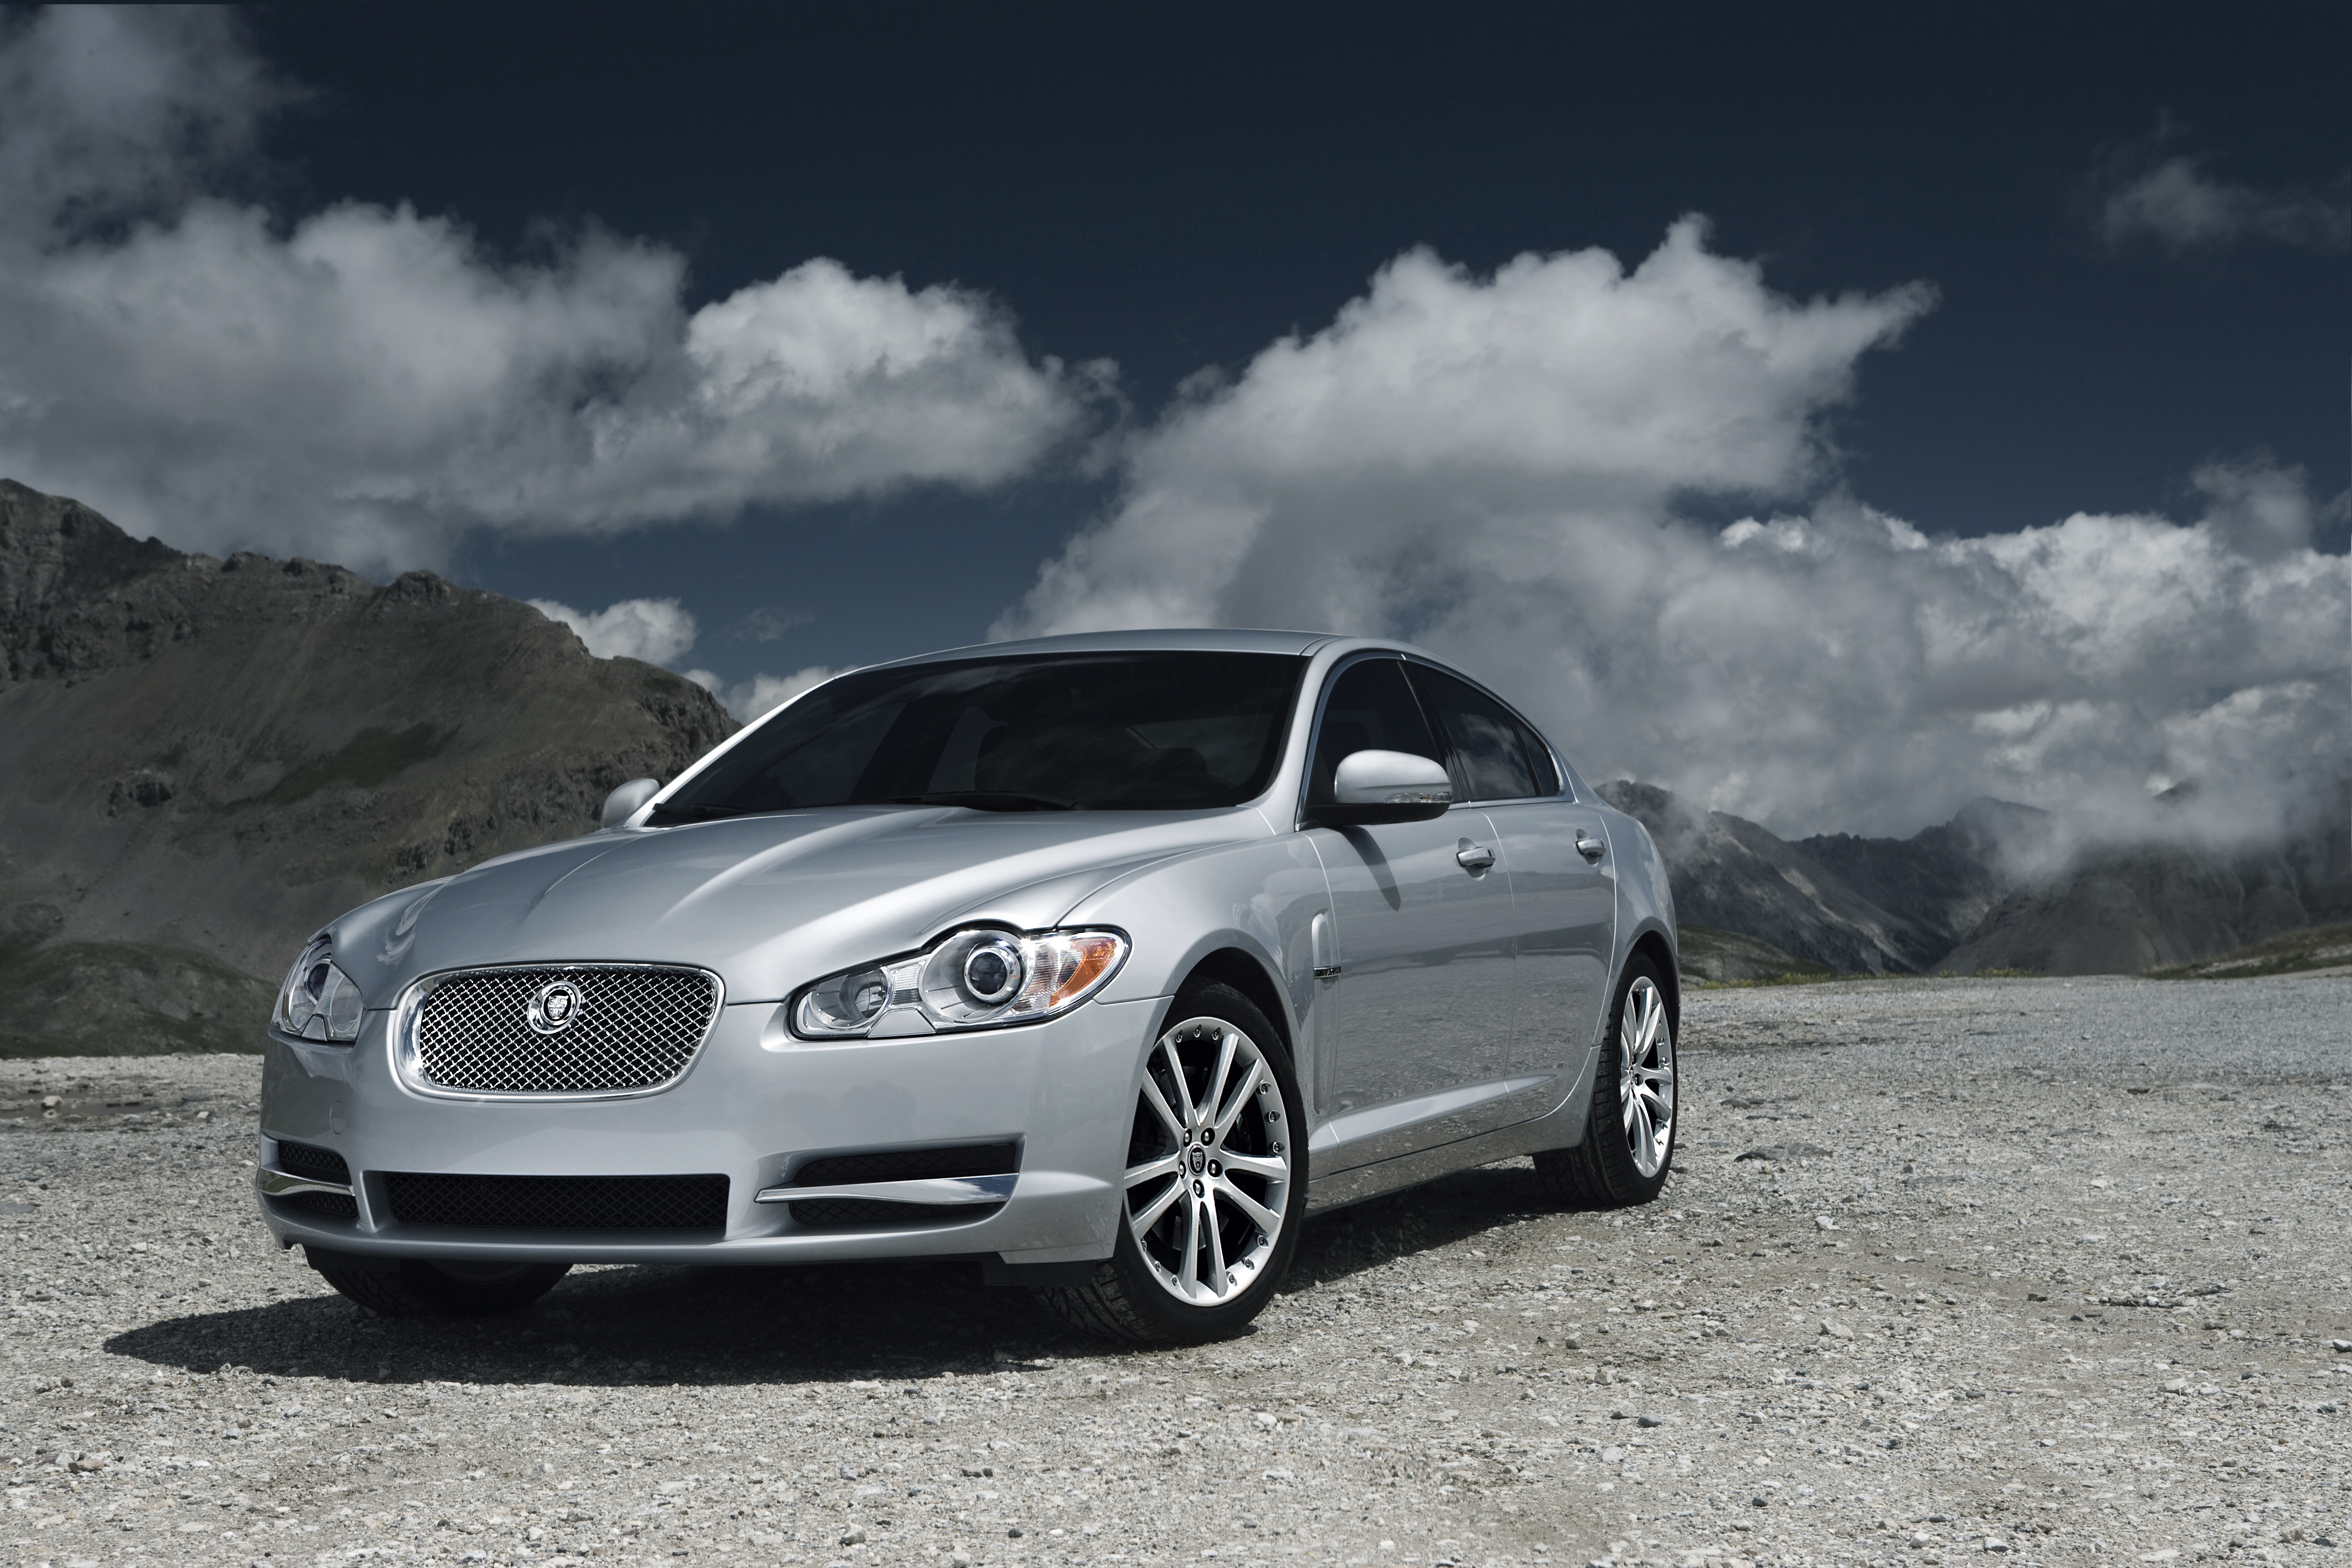 2009 jaguar xf diesel s review top speed. Black Bedroom Furniture Sets. Home Design Ideas